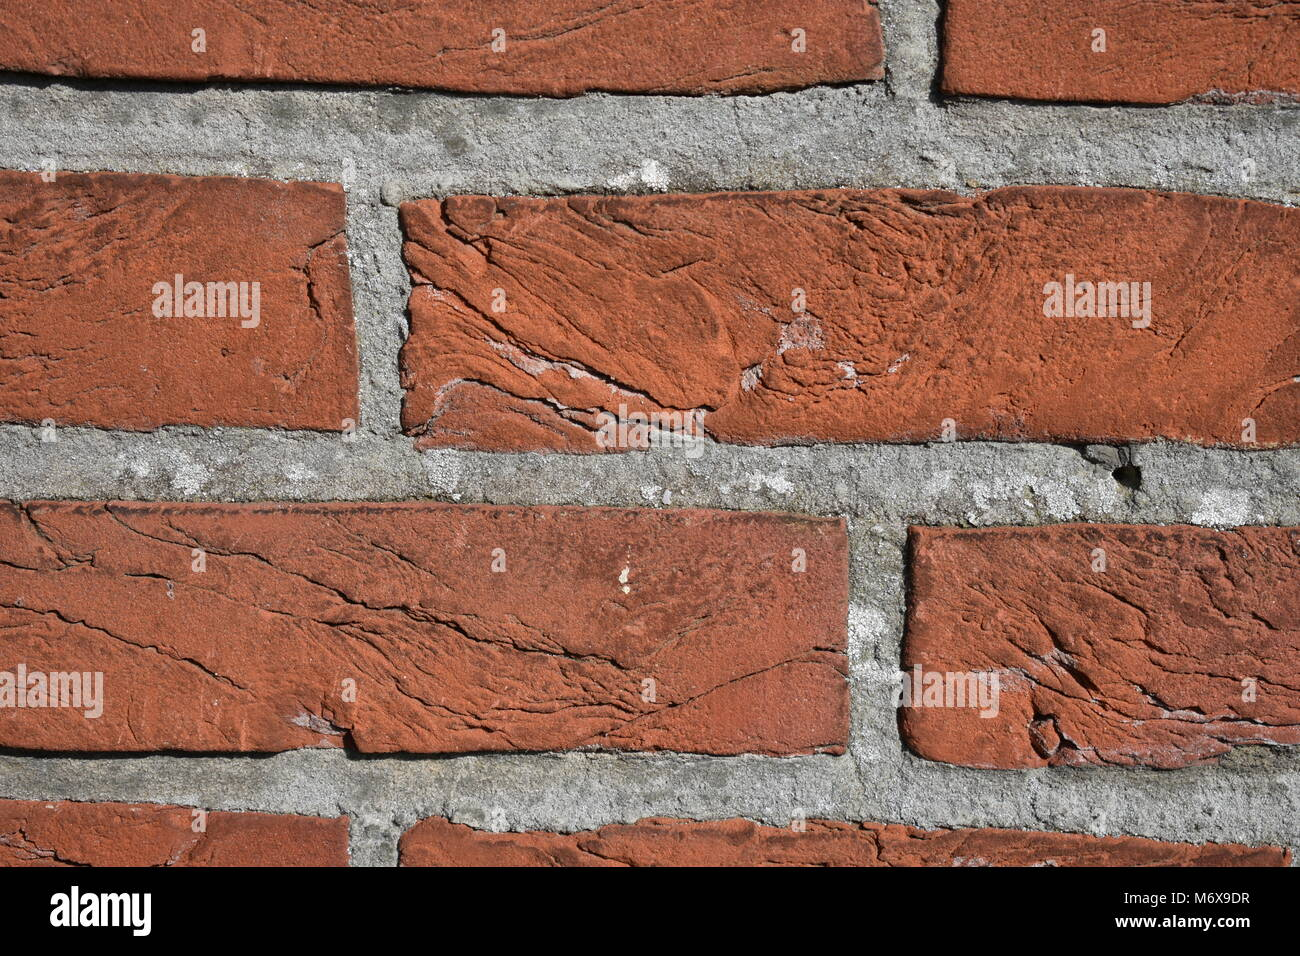 Close-up of wall with red bricks and grey joints - Stock Image